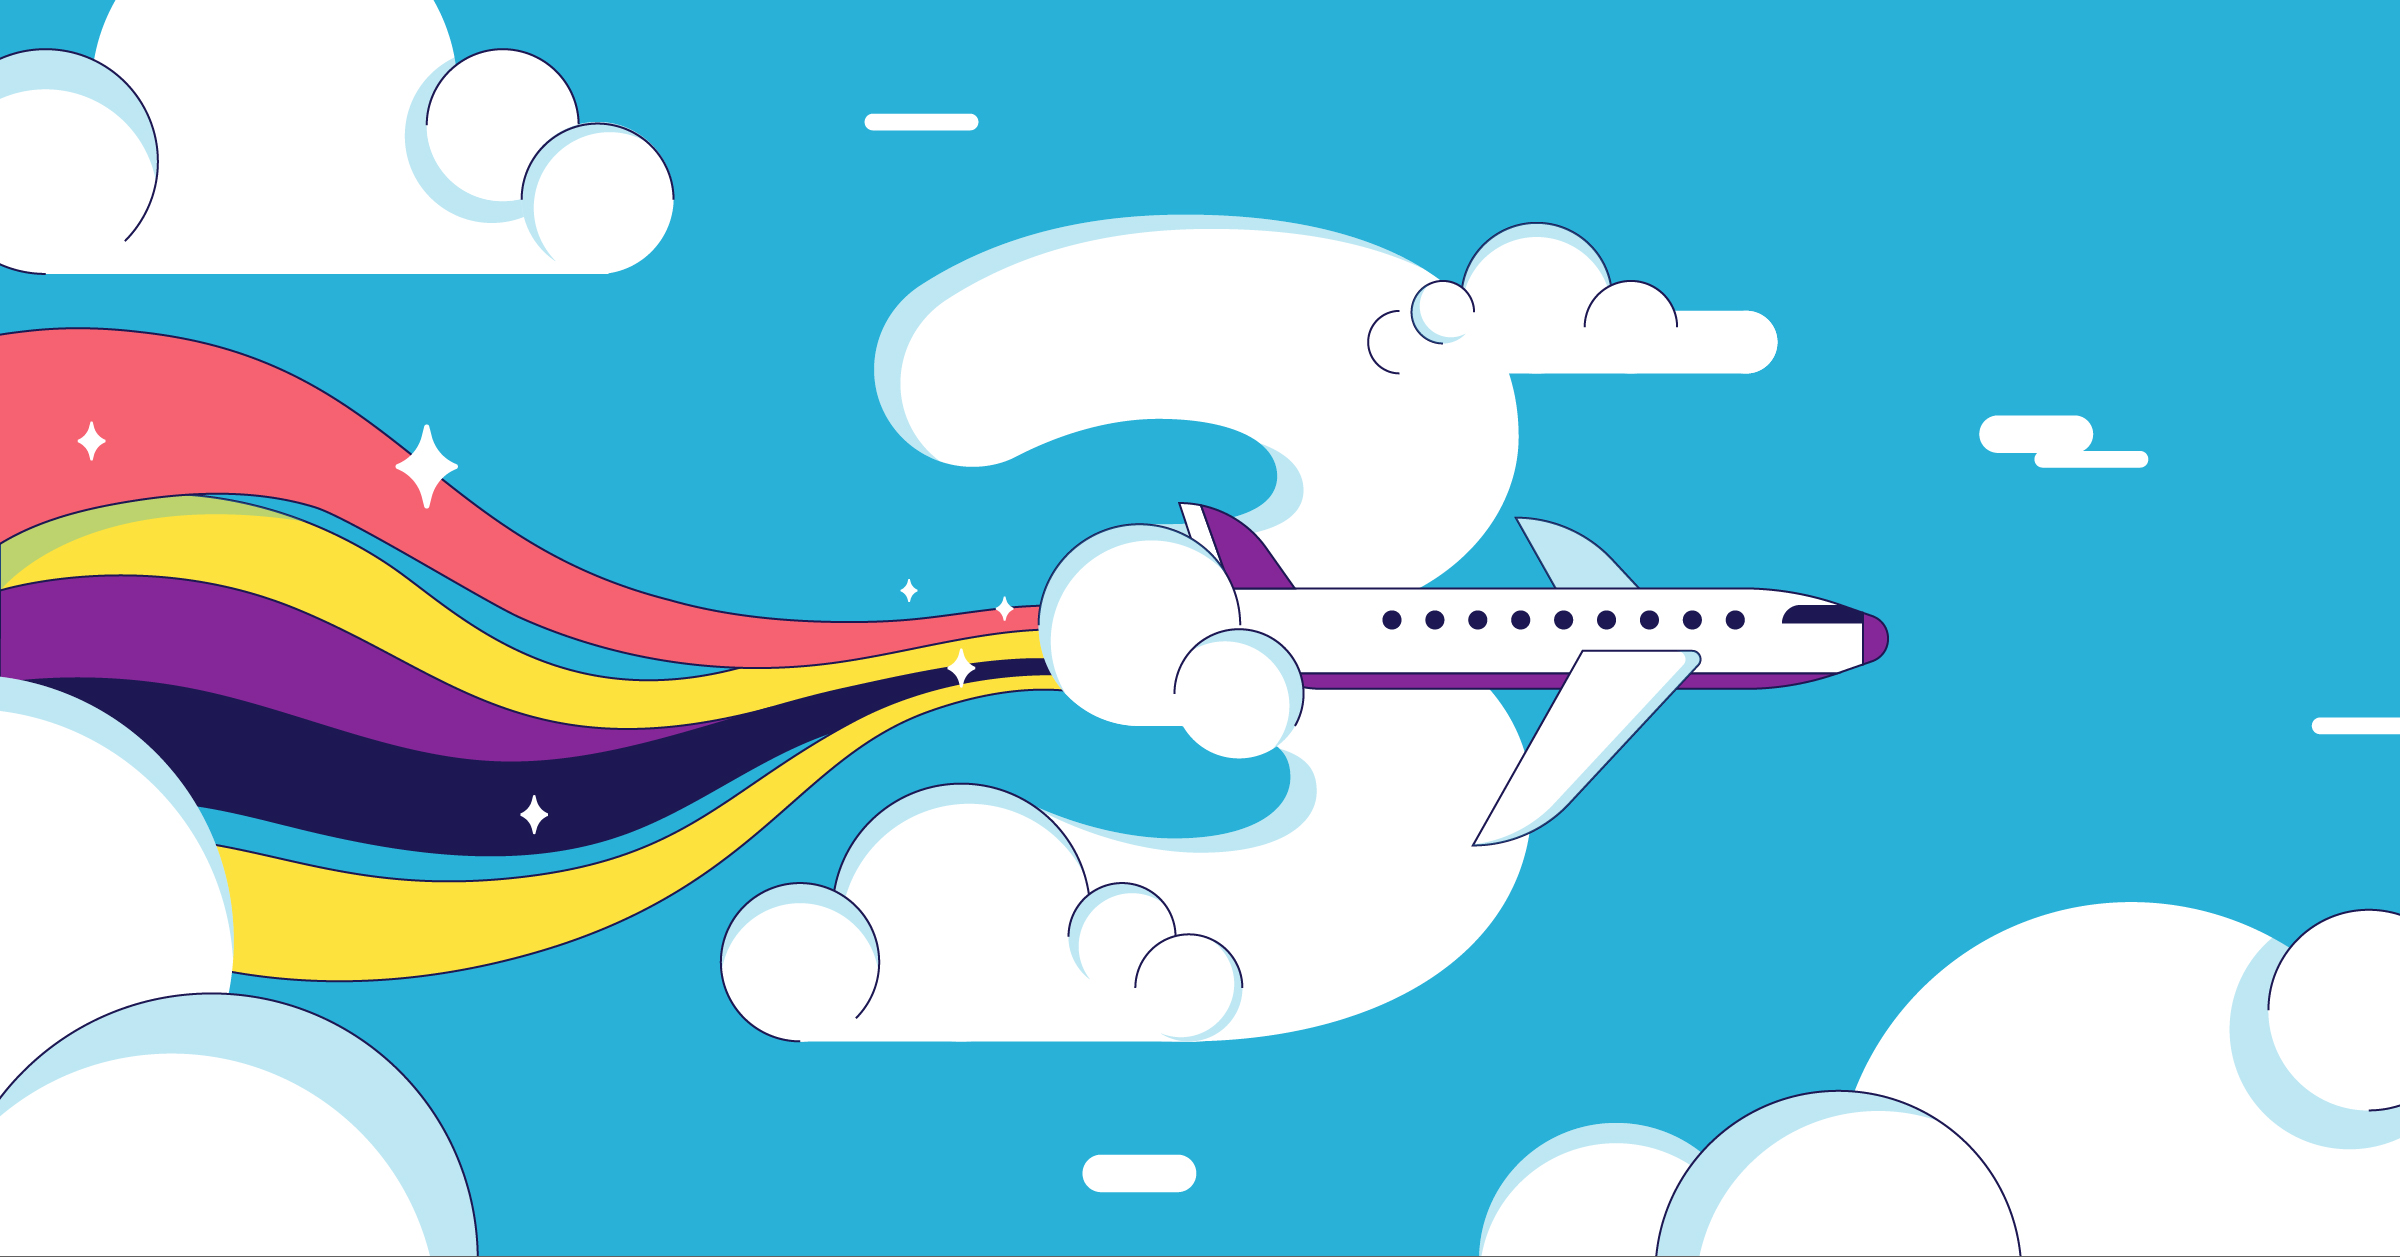 Top 3 Creative Trends to Help Travel Advertisers Scale on Social